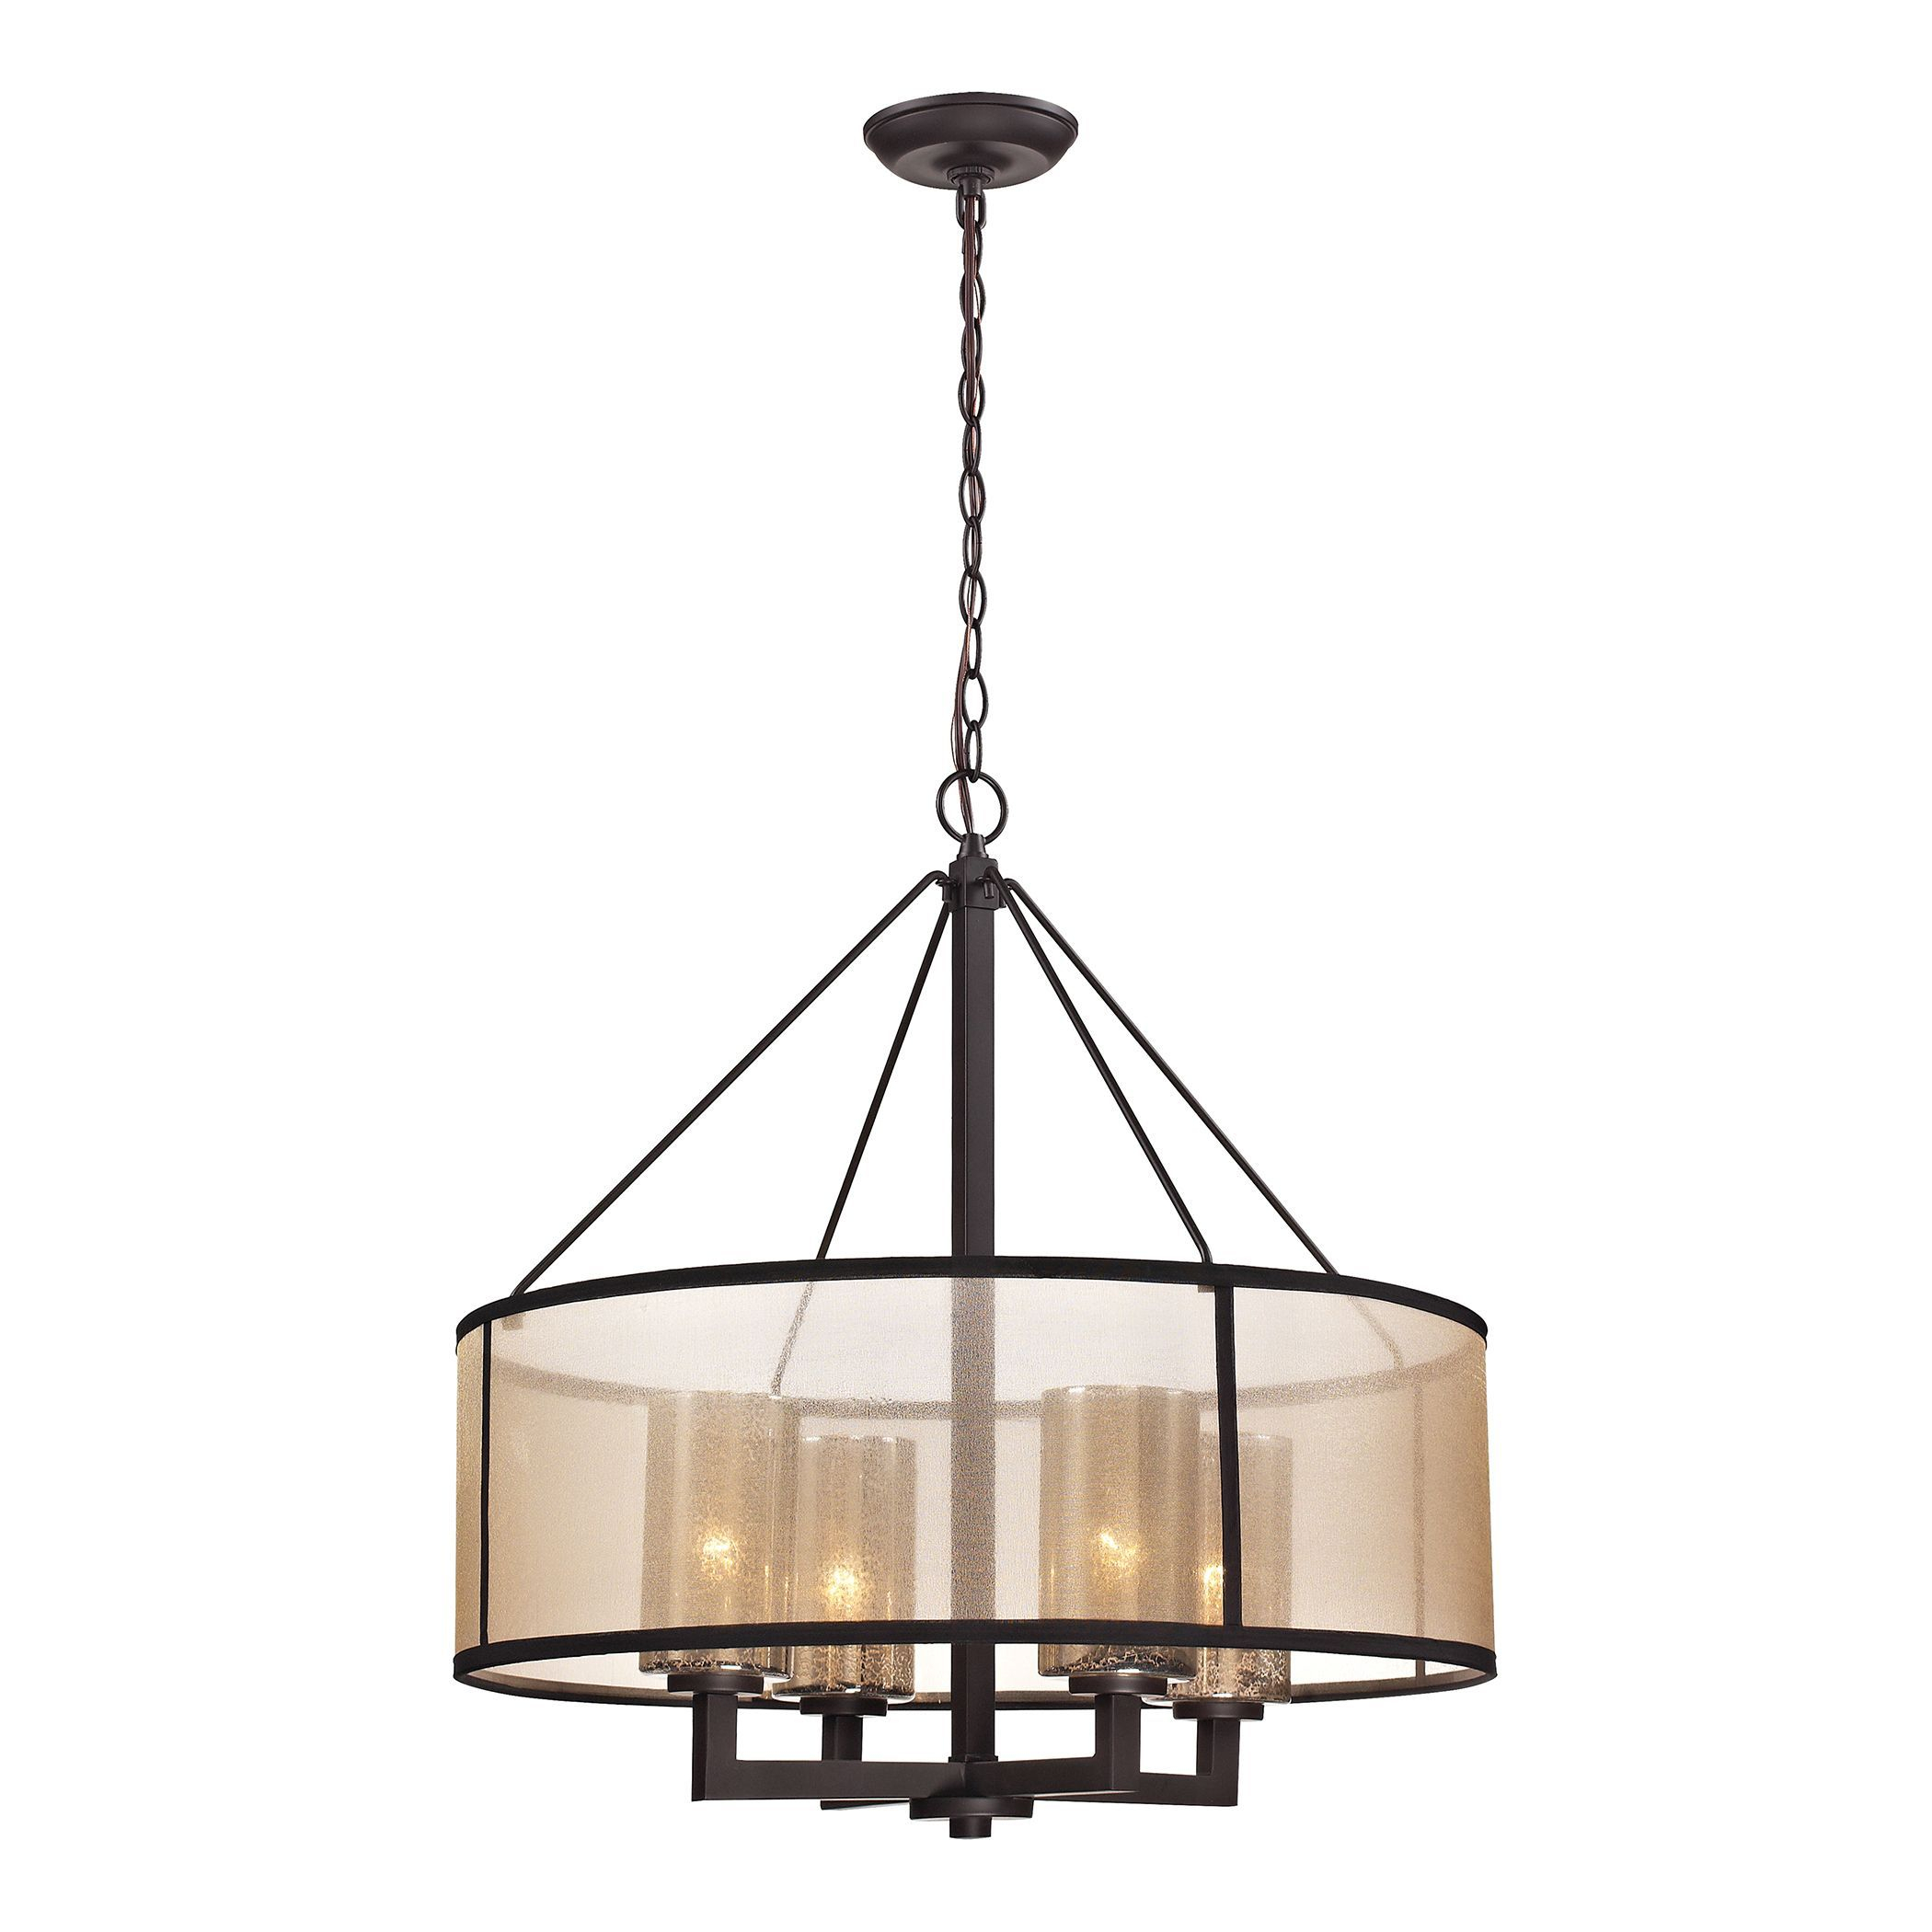 Elk Lighting 'diffusion' 4 Light Oil Rubbed Bronze With Regard To Harlan 5 Light Drum Chandeliers (Photo 24 of 30)